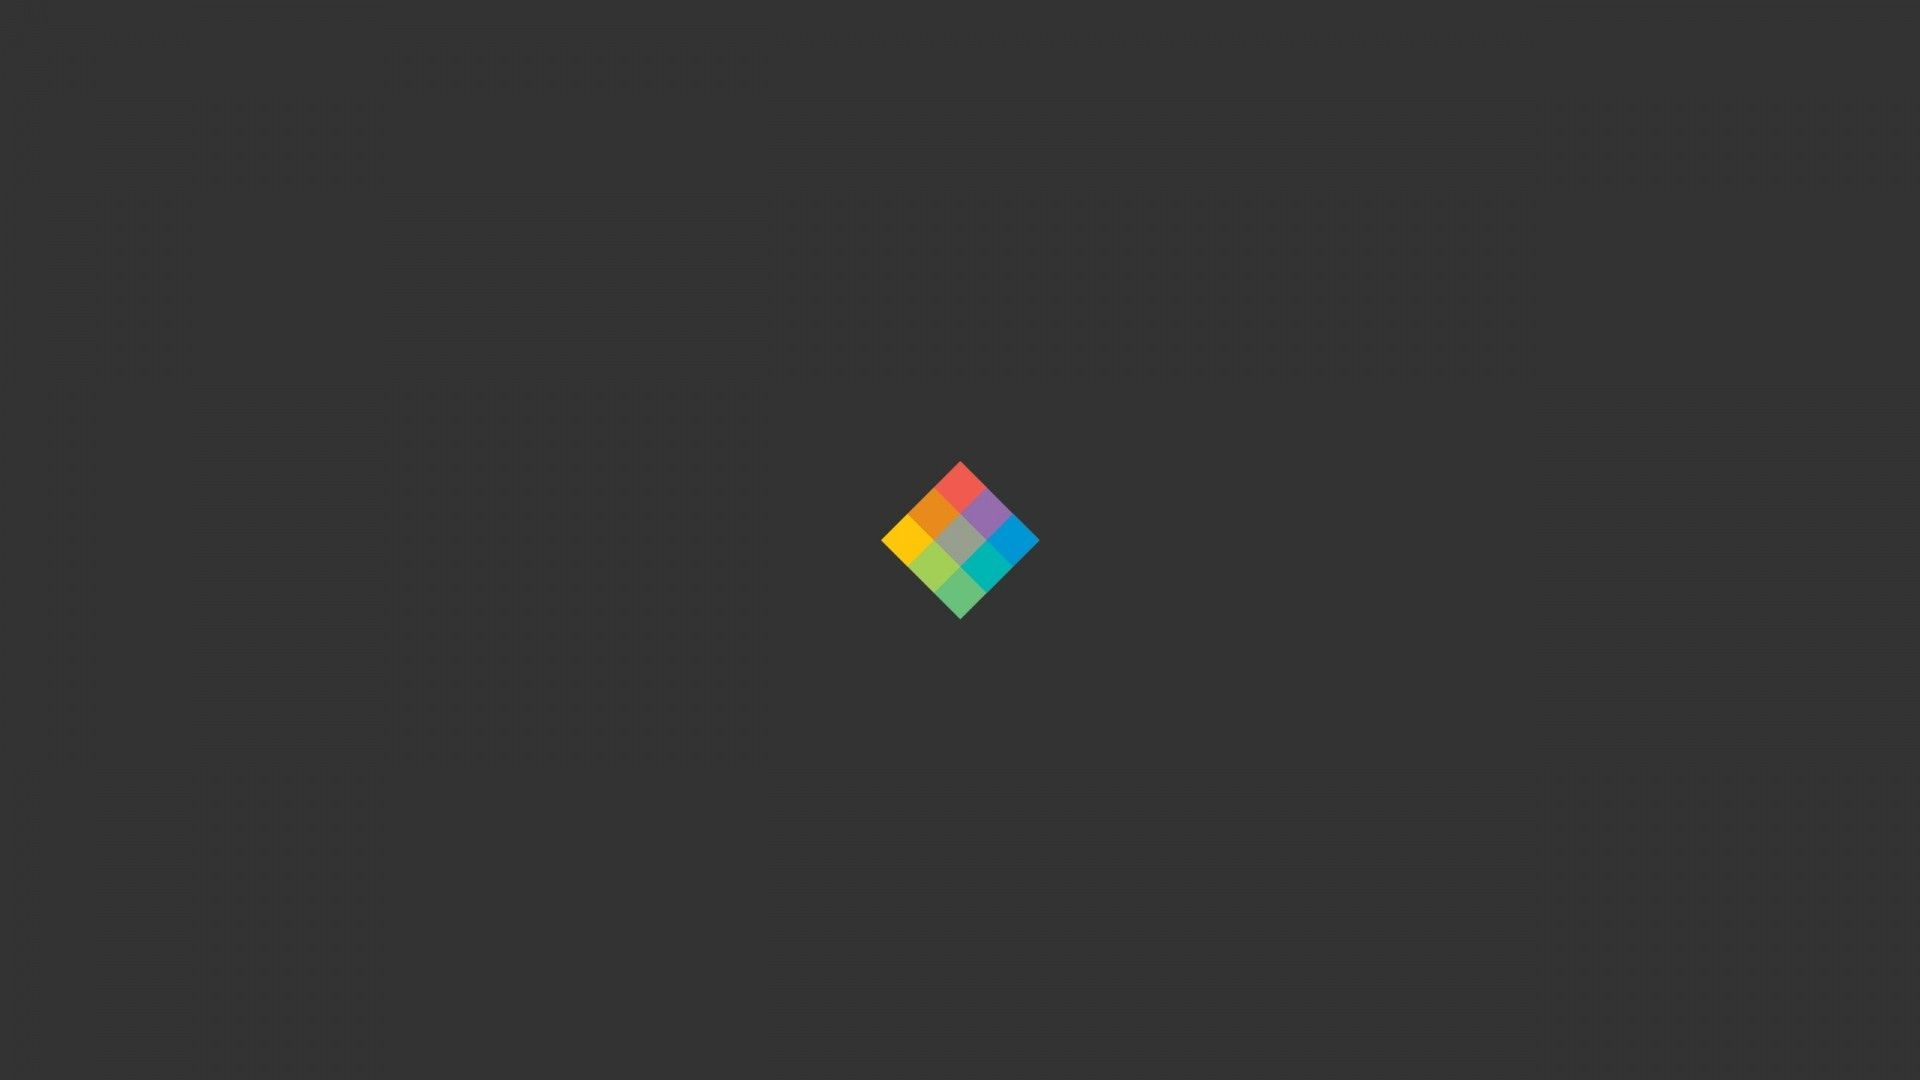 1080p Minimalist Wallpapers Wallpaper Cave Minimalism wallpapers, backgrounds, images 1920x1080— best minimalism desktop wallpaper sort wallpapers by: 1080p minimalist wallpapers wallpaper